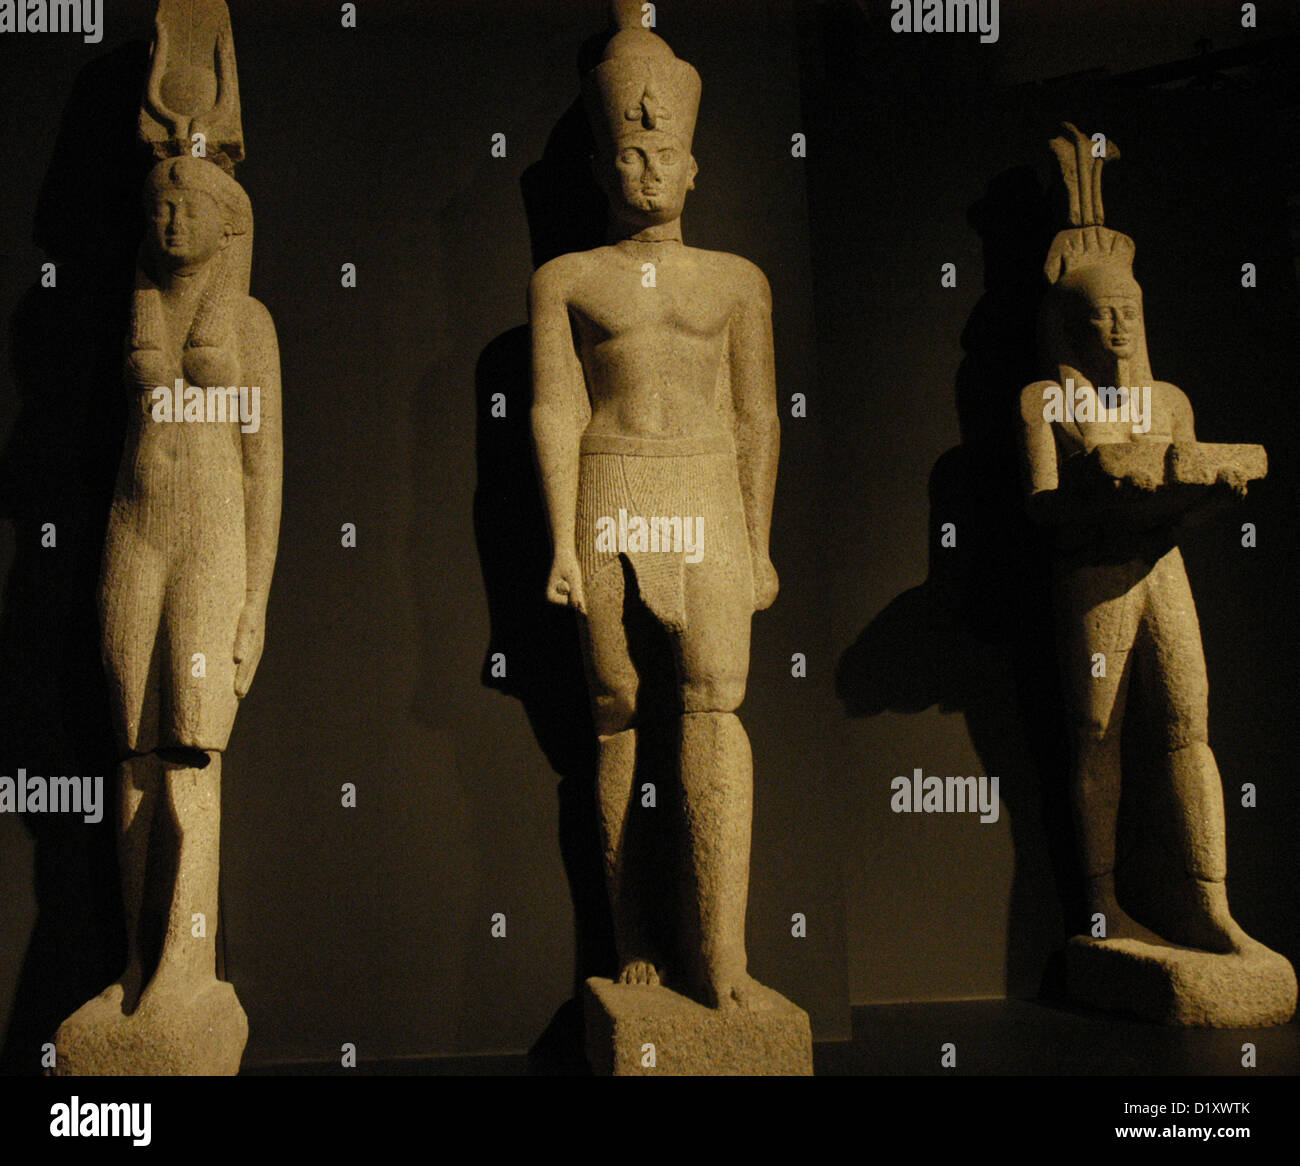 Egyptian art. Colossal statues of a pharaoh, his wife and the god Hapi (God of fertility). - Stock Image